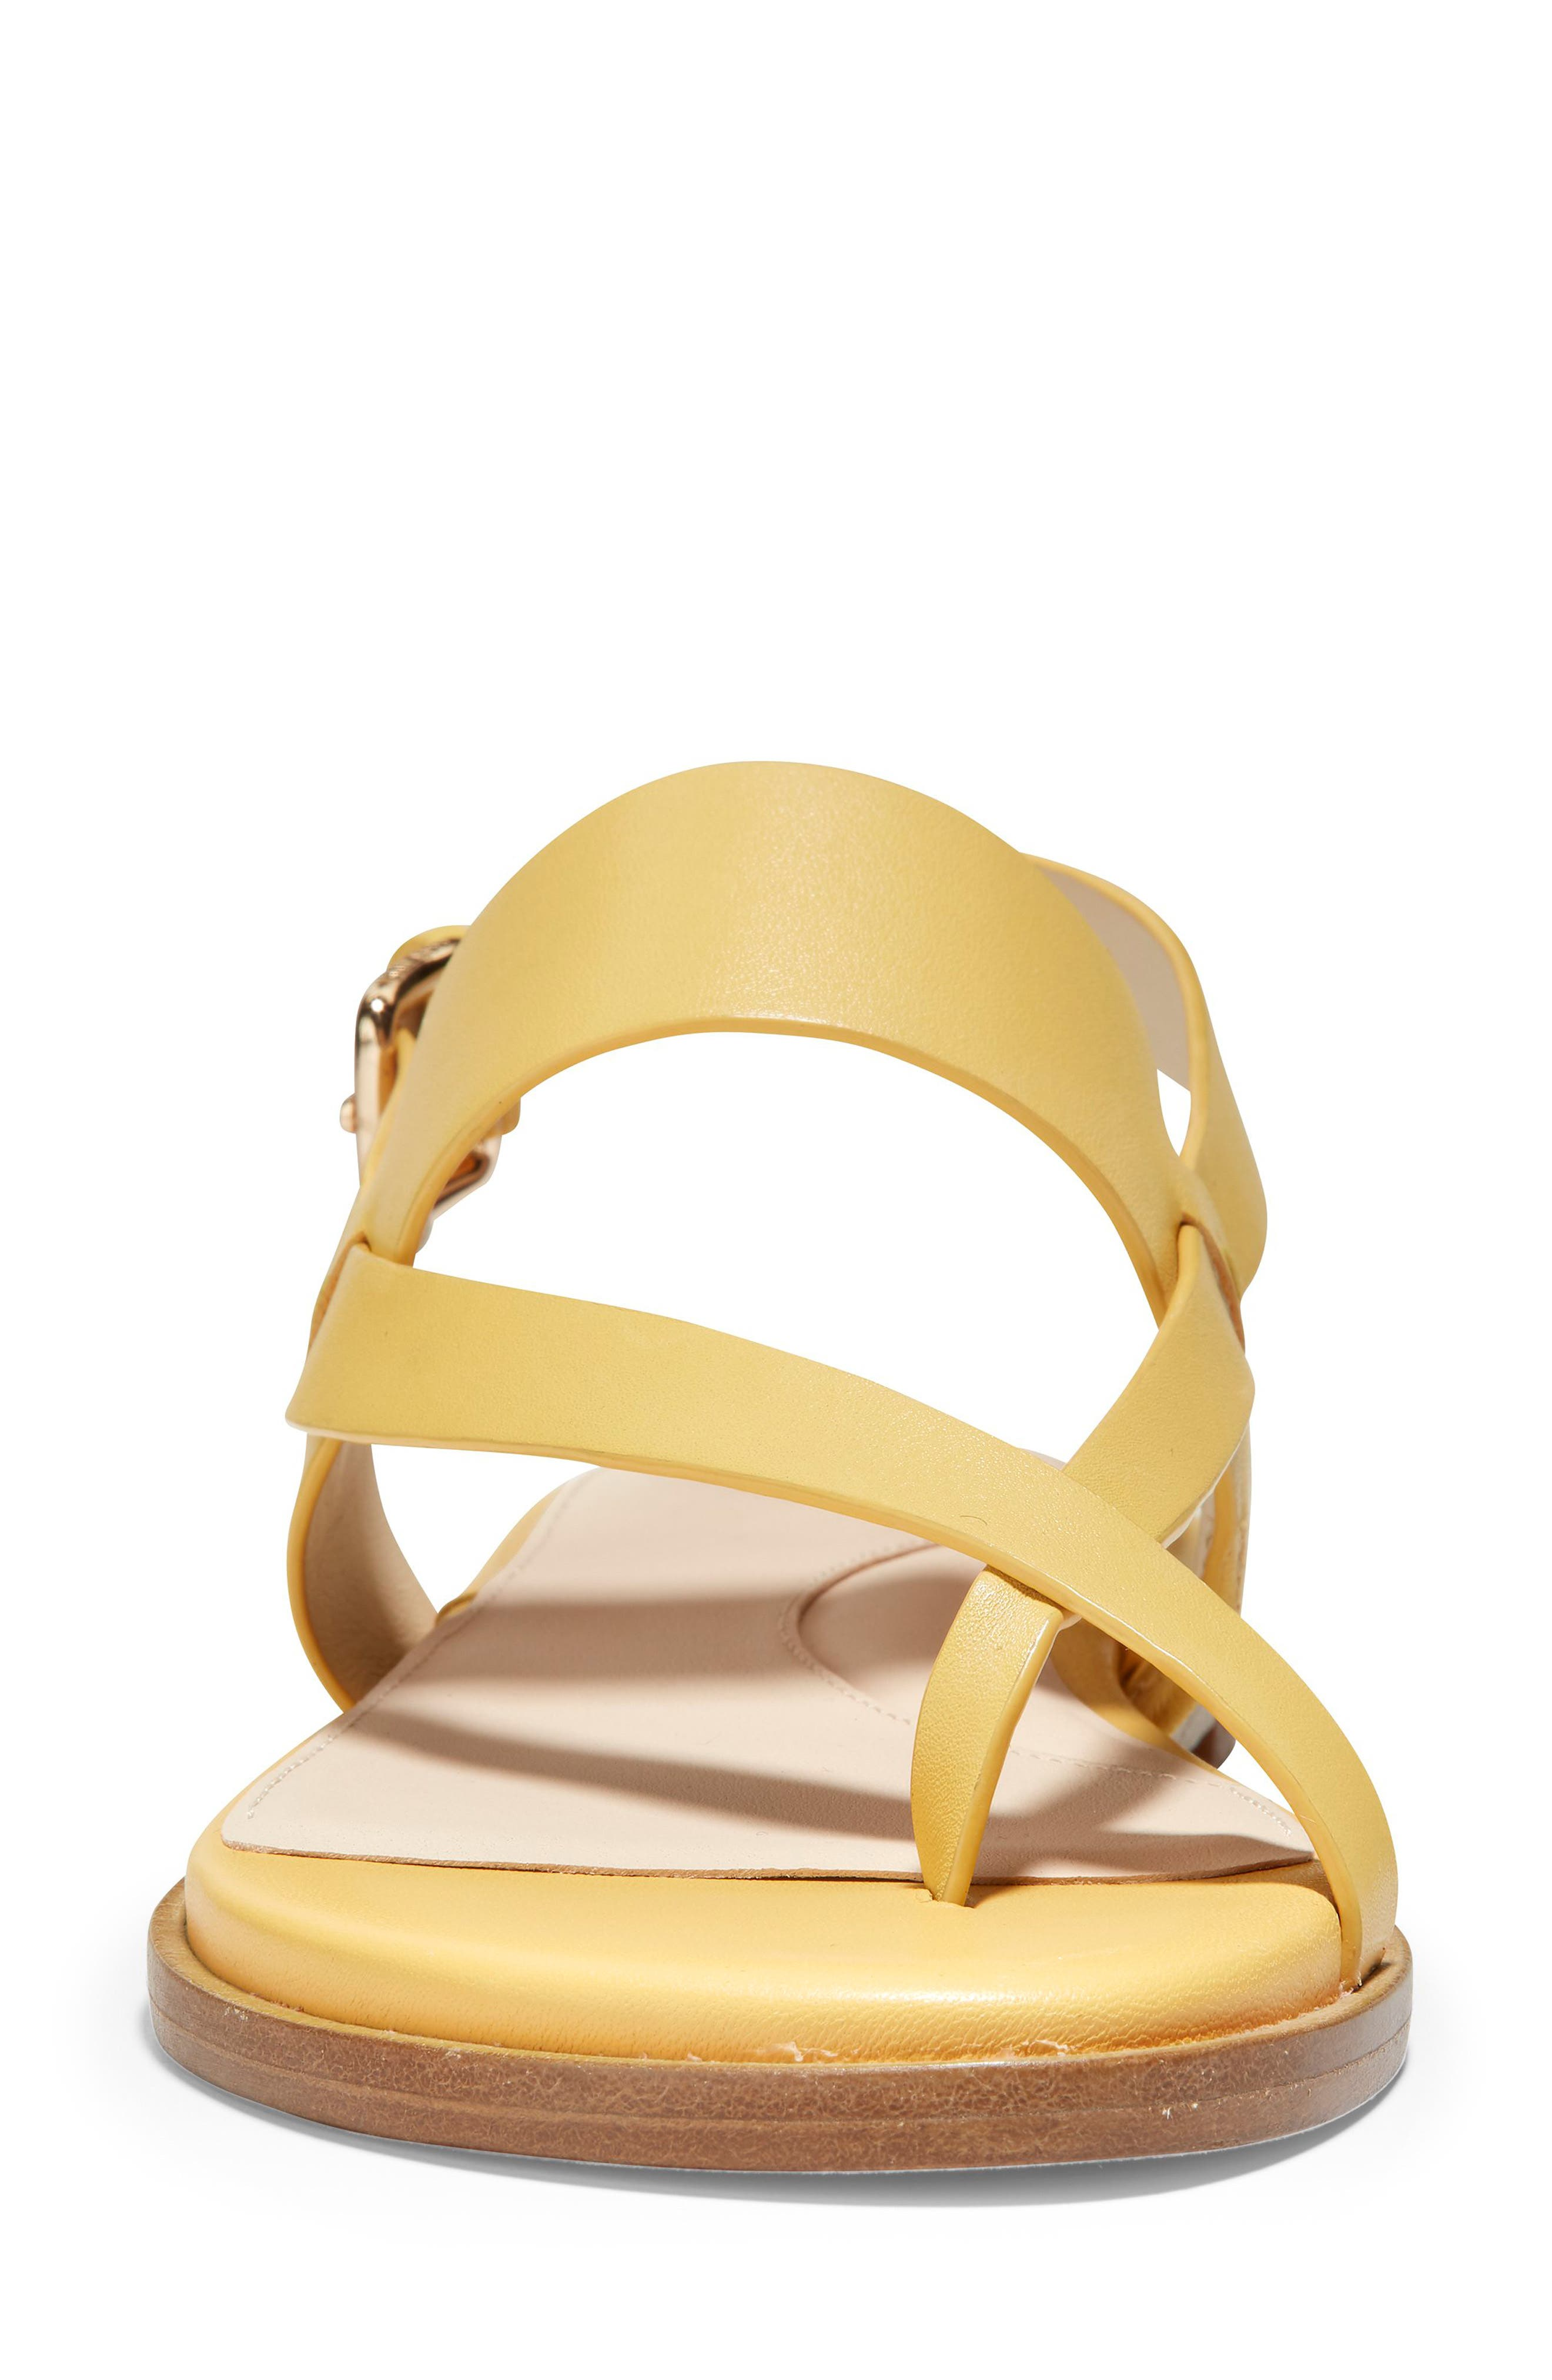 COLE HAAN, Anica Sandal, Alternate thumbnail 4, color, SUNSET GOLD LEATHER